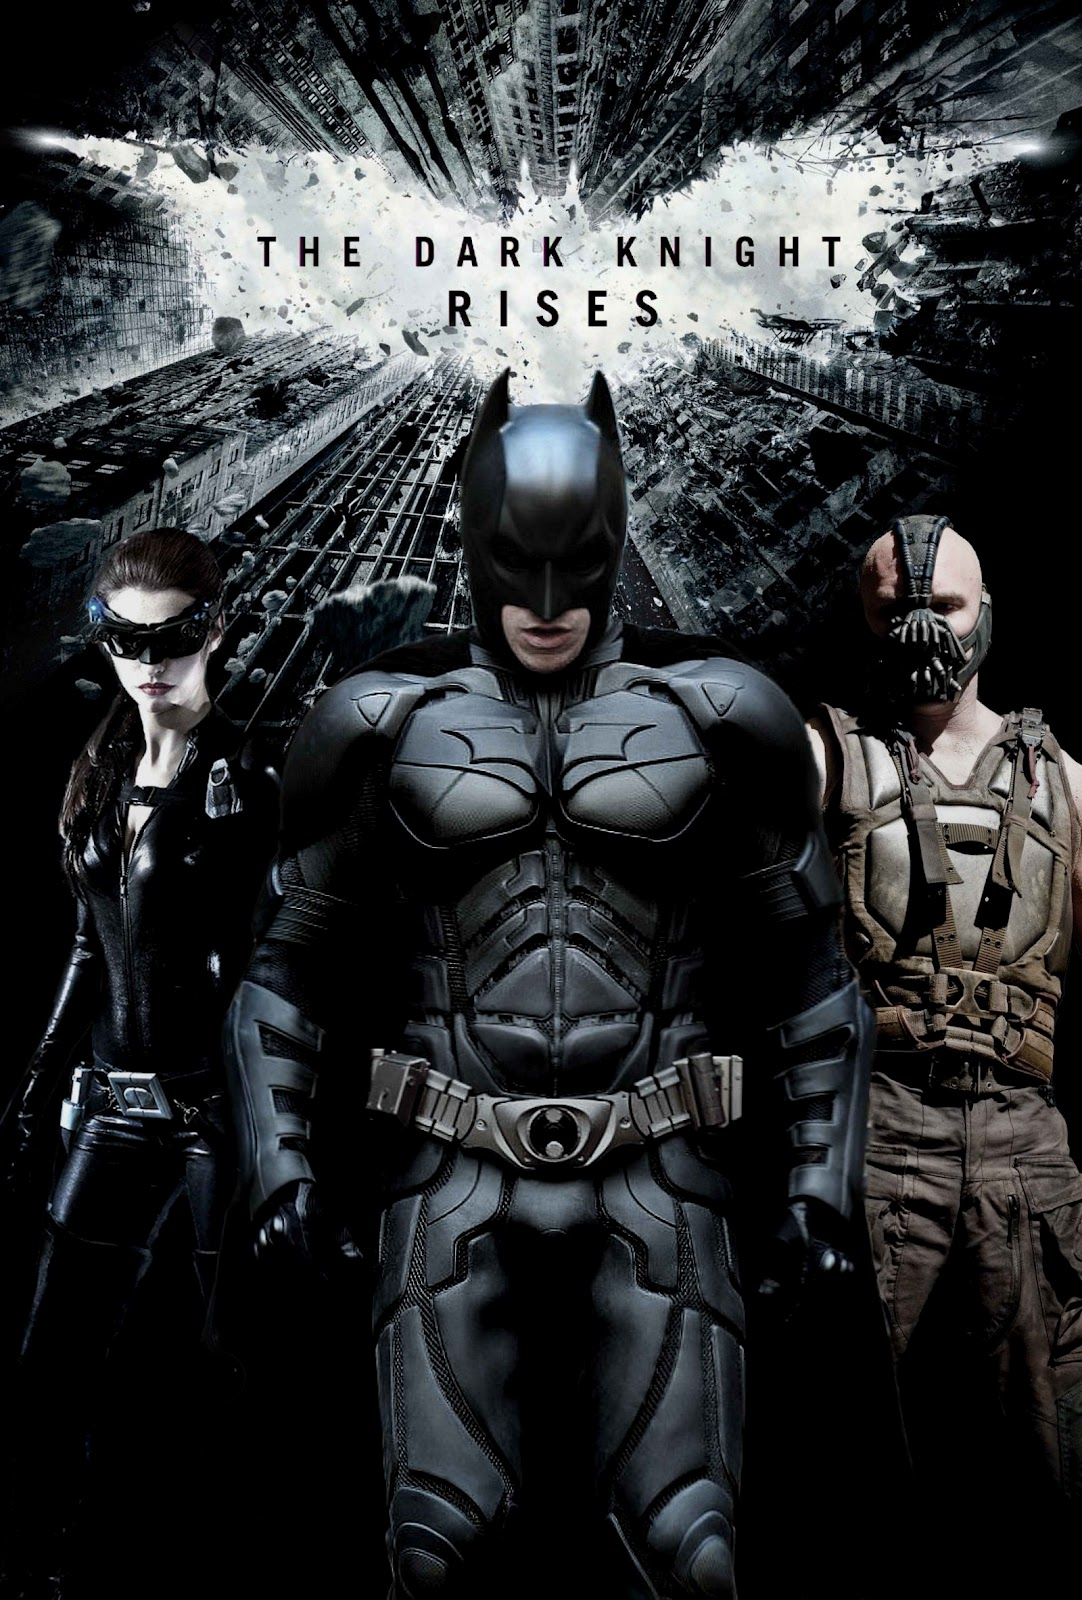 the dark knight rises free download in hindi 720p